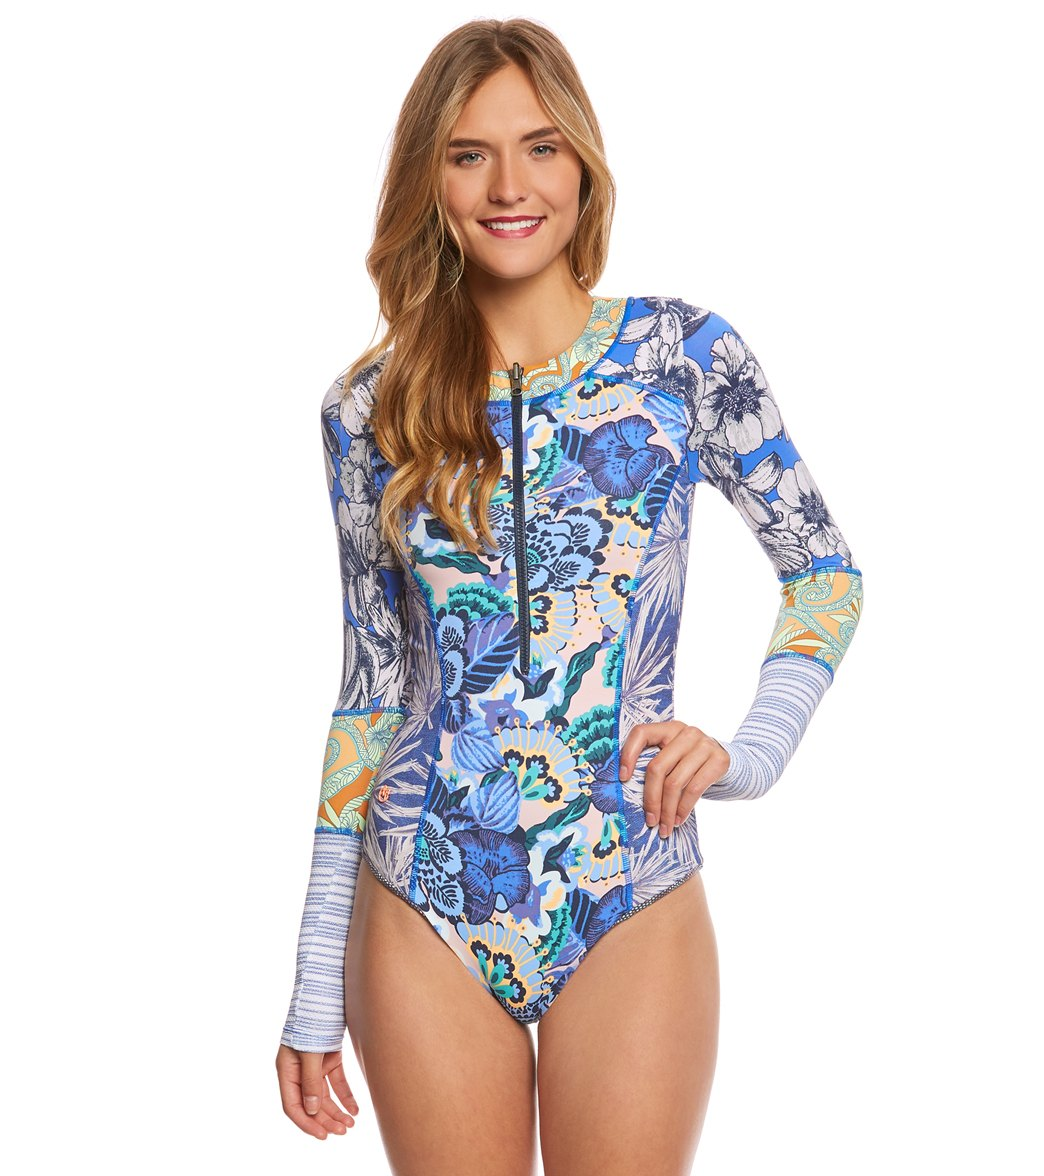 7b12f4afc15 Maaji Swimwear Surfer Picturesque Surf Suit at SwimOutlet.com - Free  Shipping